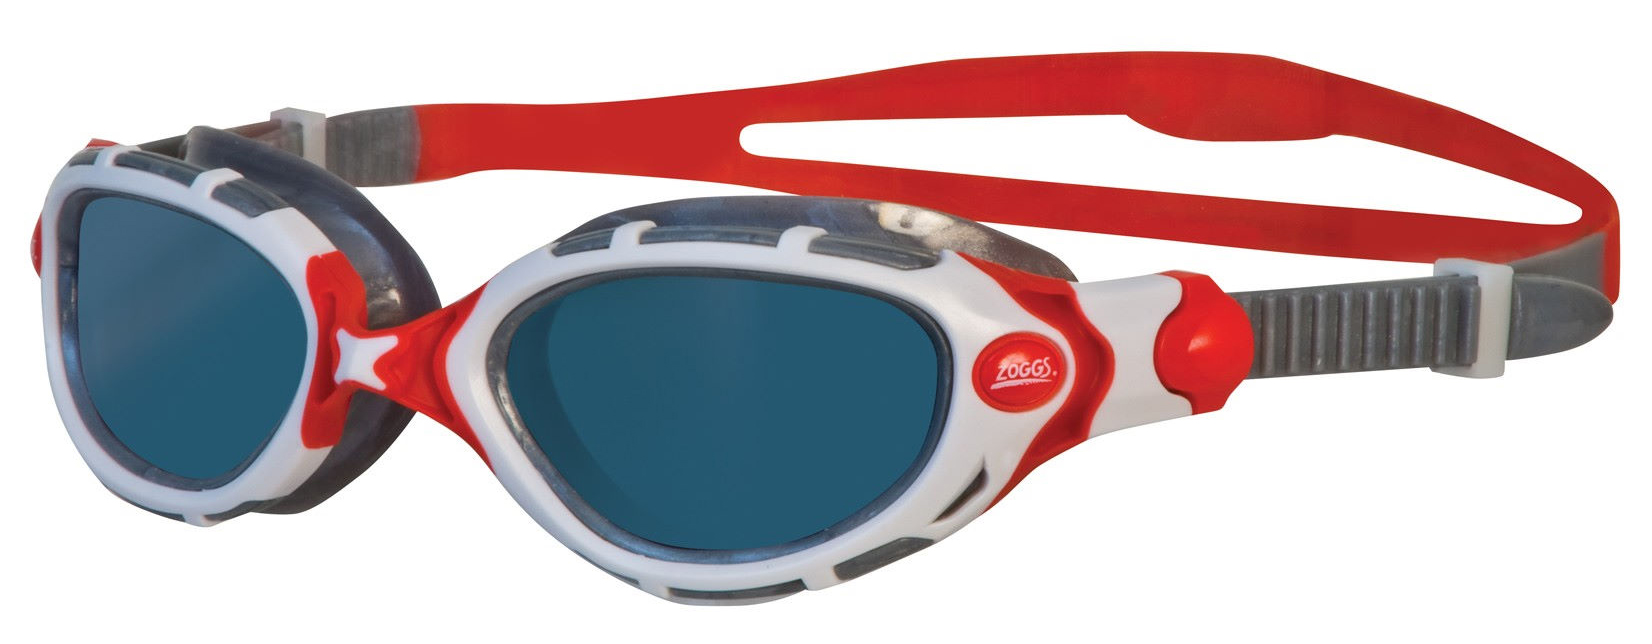 8fec2833e6 In-depth review of the 10 best EXPERT recommended swim goggles - the ...